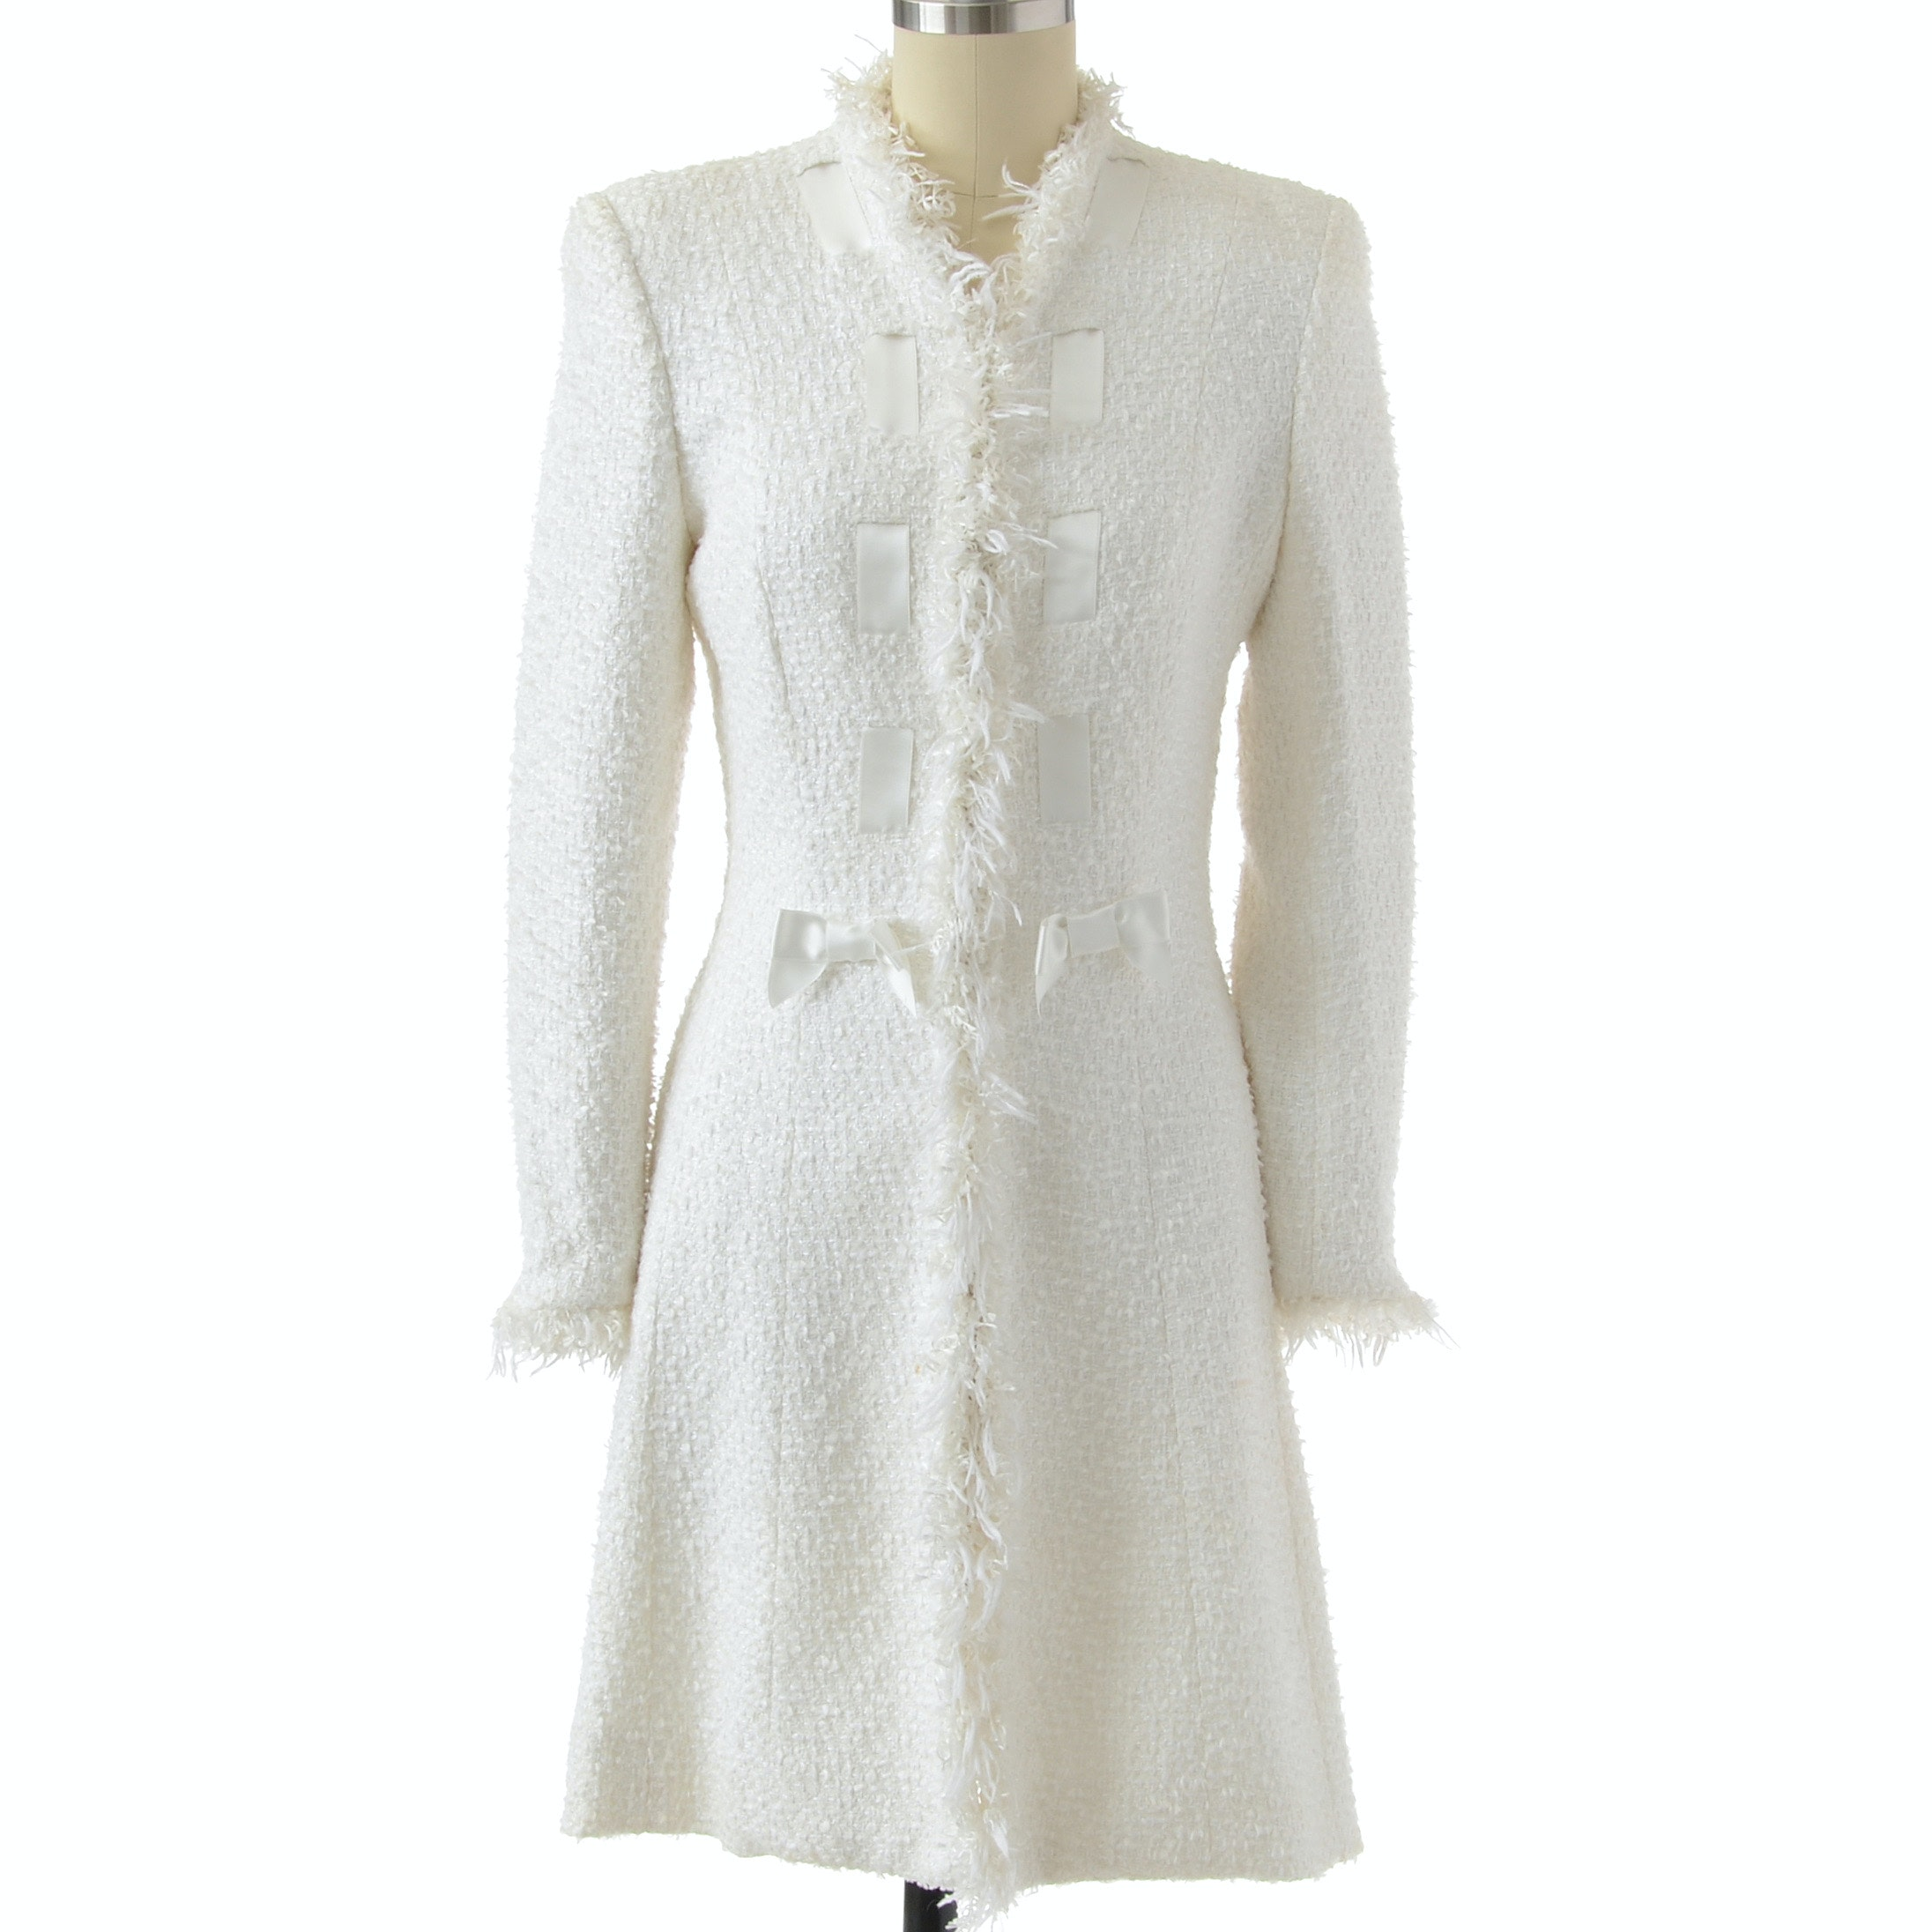 "Escada White Knit Mid-Length Dress Coat Susan Wore at Event Promoting Her Memoir ""All My Life"""